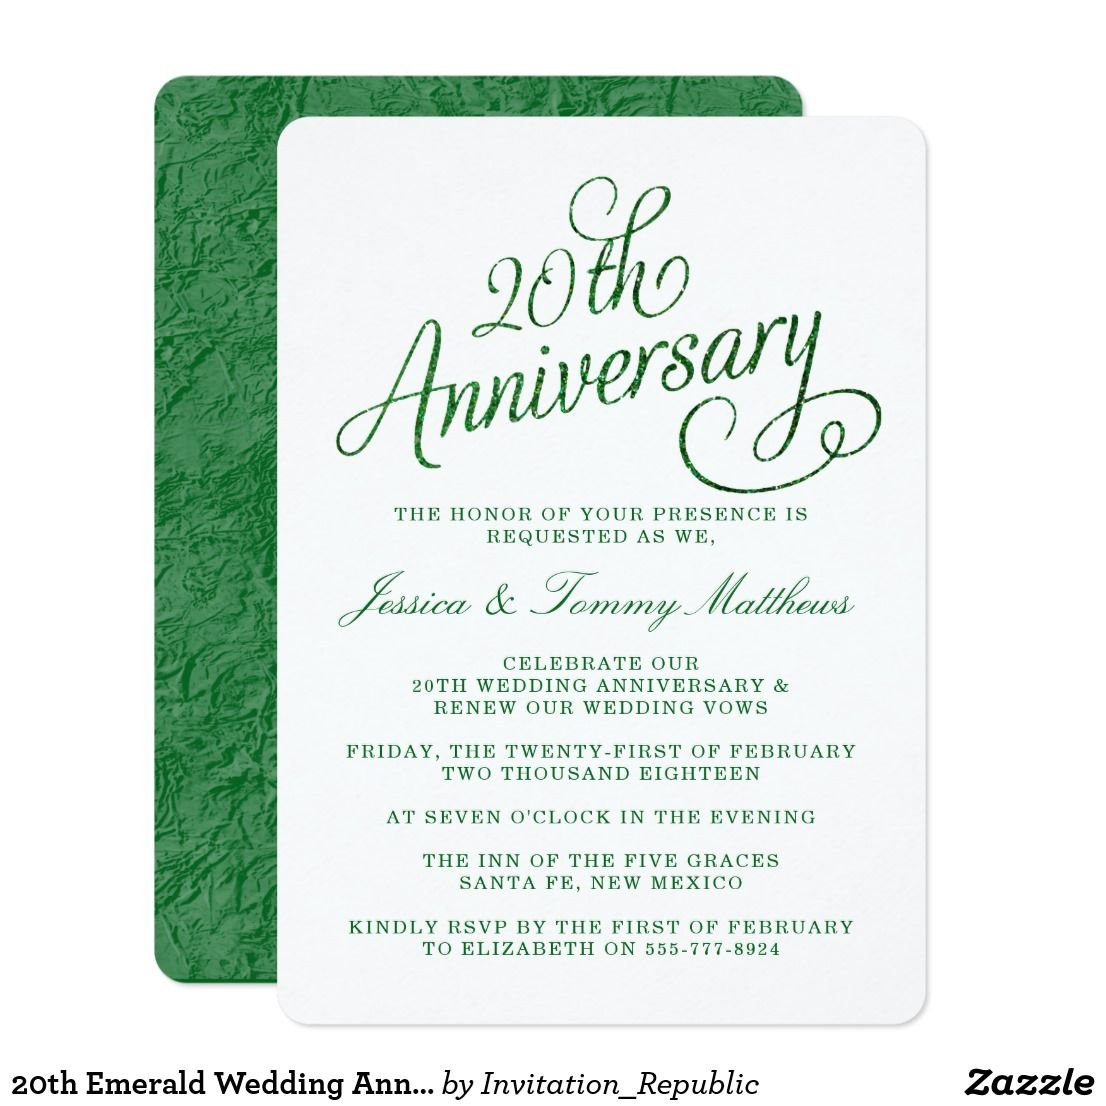 20th Emerald Wedding Anniversary Invitations | Emerald wedding ...